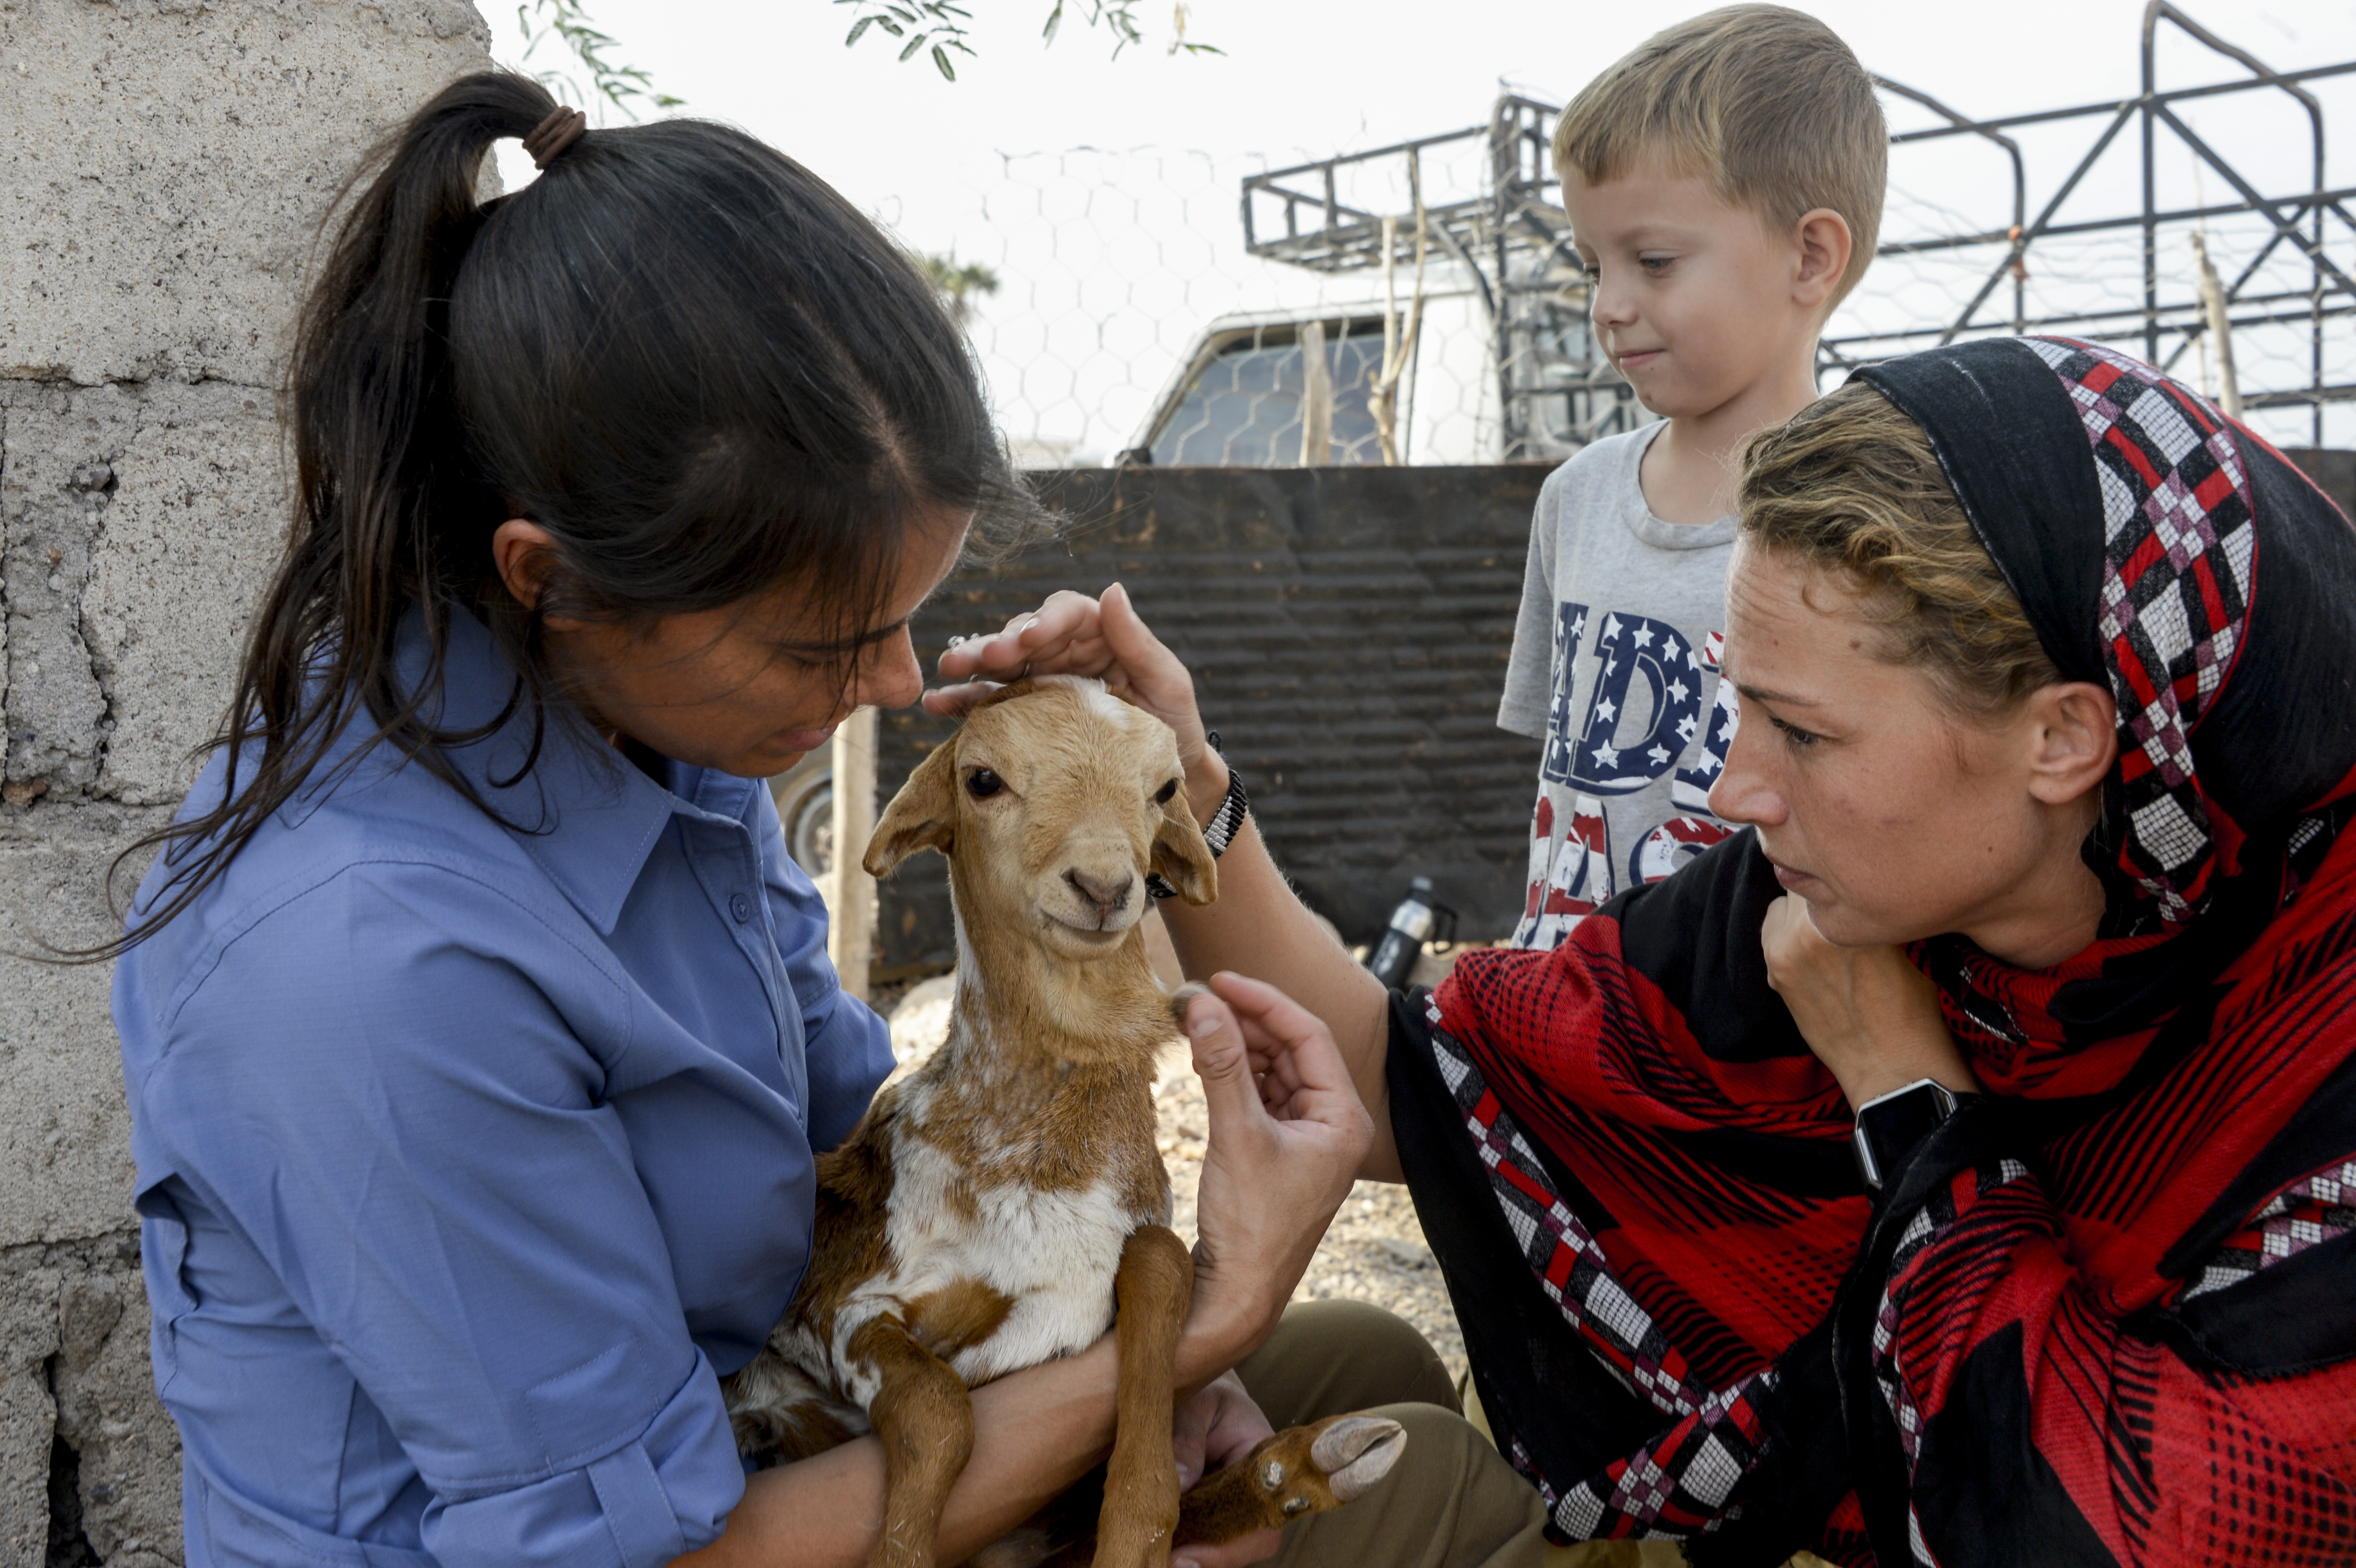 U.S. Army Capt. Kika Straub, civil affairs veterinary field officer, and U.S. Army Sgt. Sarah Dearcy, civil affairs medical specialist, examine a young goat in a village near Tadjourah, Djibouti, Dec. 15, 2016.  U.S. Army Civil Affairs teams identify critical requirements needed by local citizens while fostering and maintaining dialogue with civilian aid agencies and assistance organizations. (U.S. Air National Guard photo by Staff Sgt. Christian Jadot)